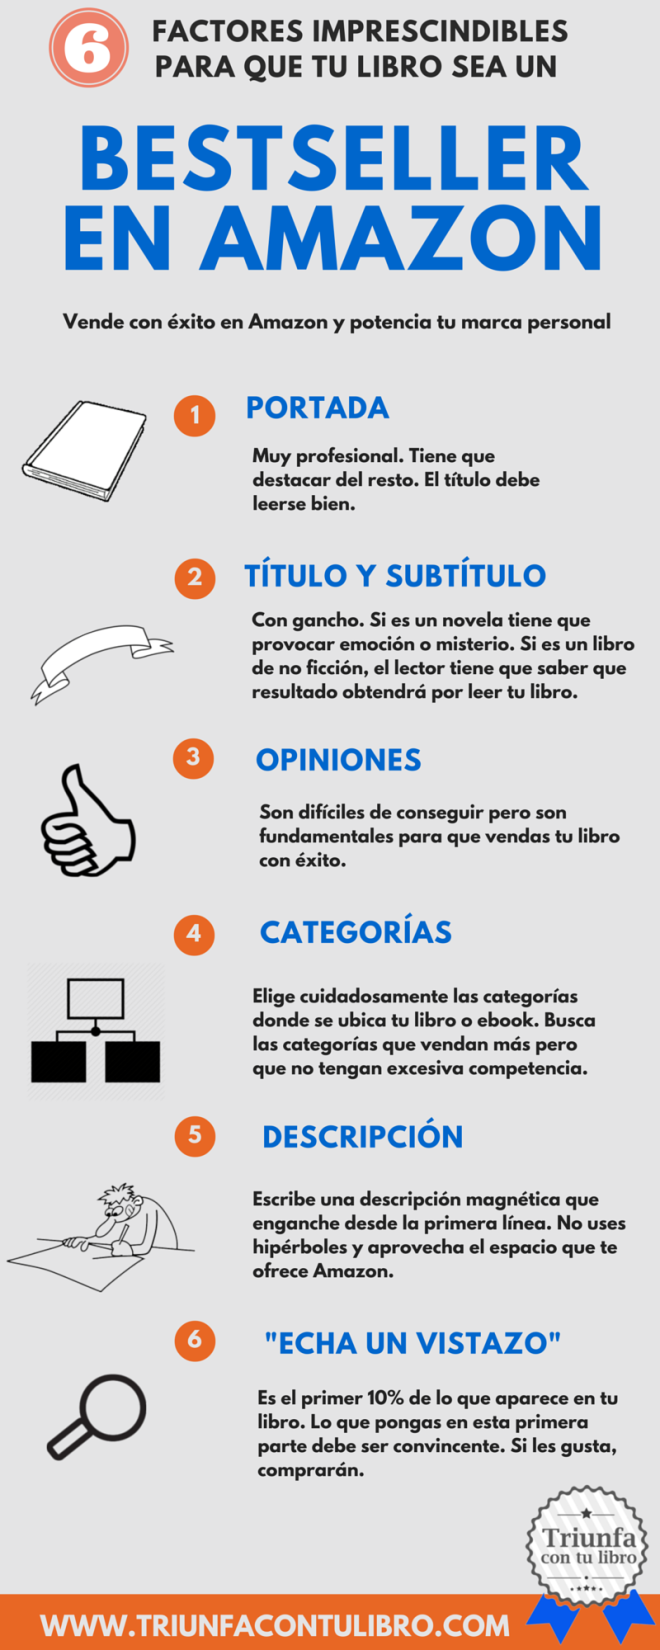 6 factores para que tu libro sea Best Seller en Amanzon